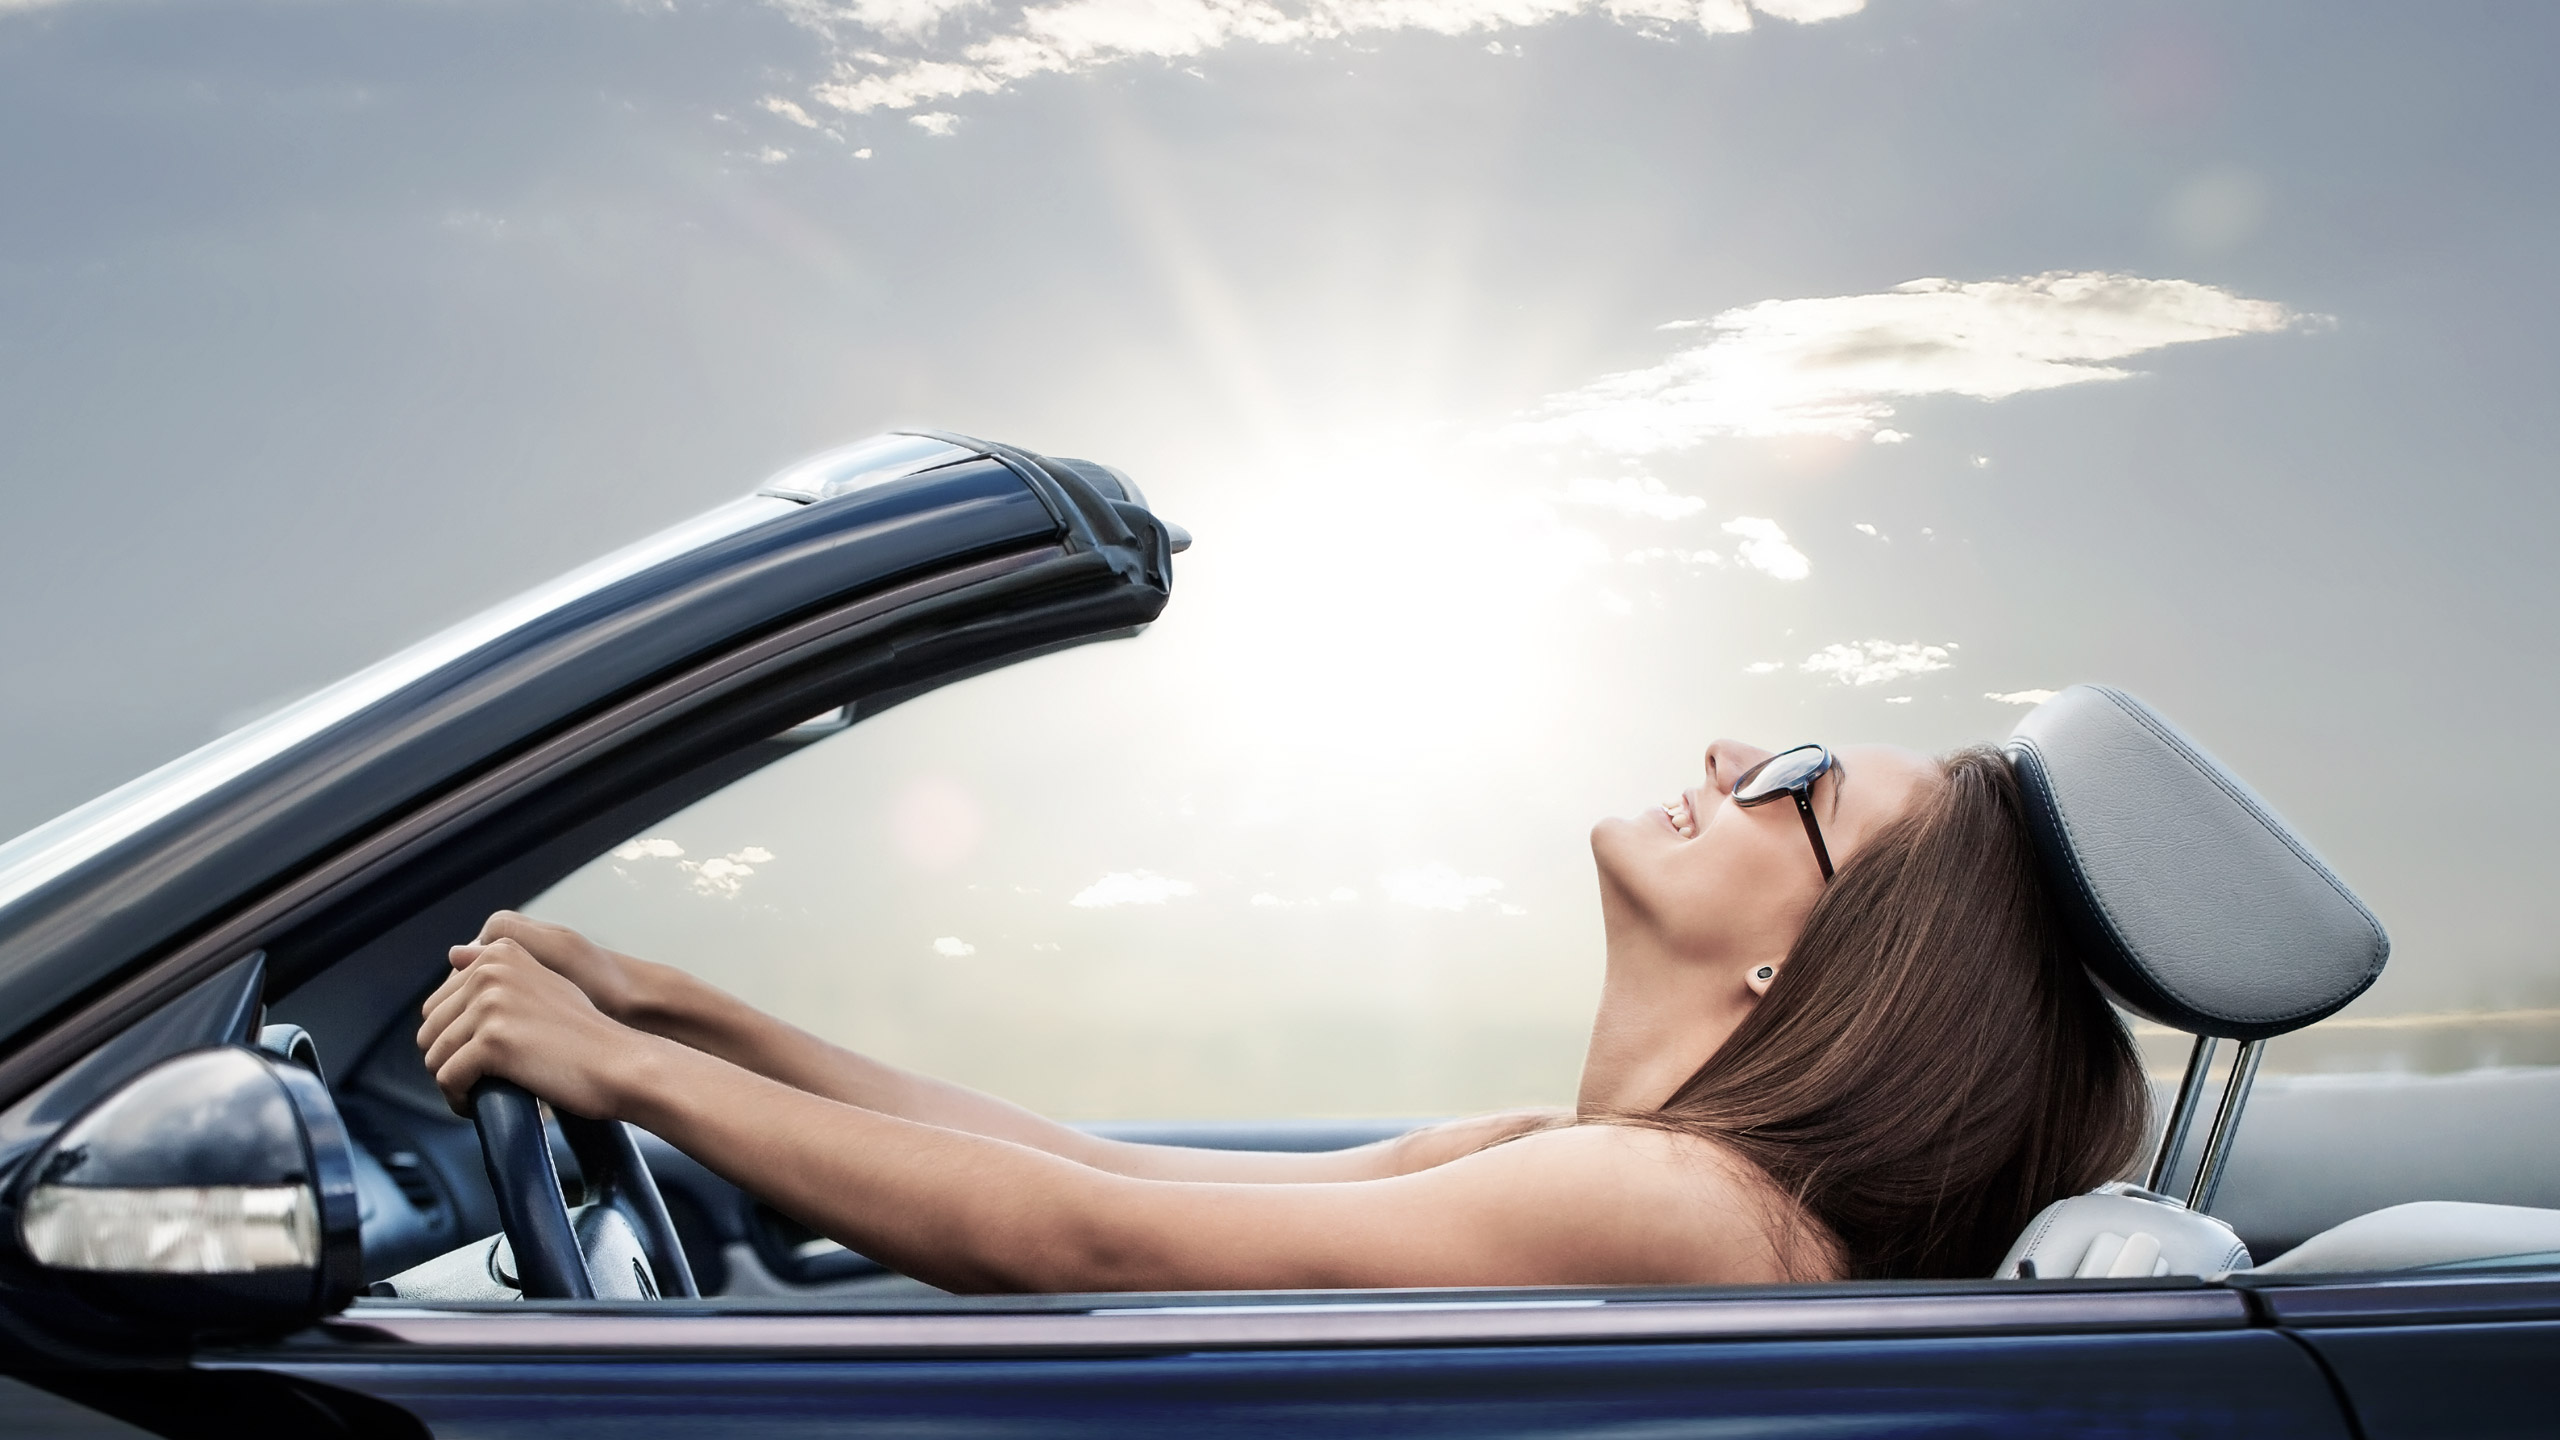 rent a car chania crete - car rental chania crete